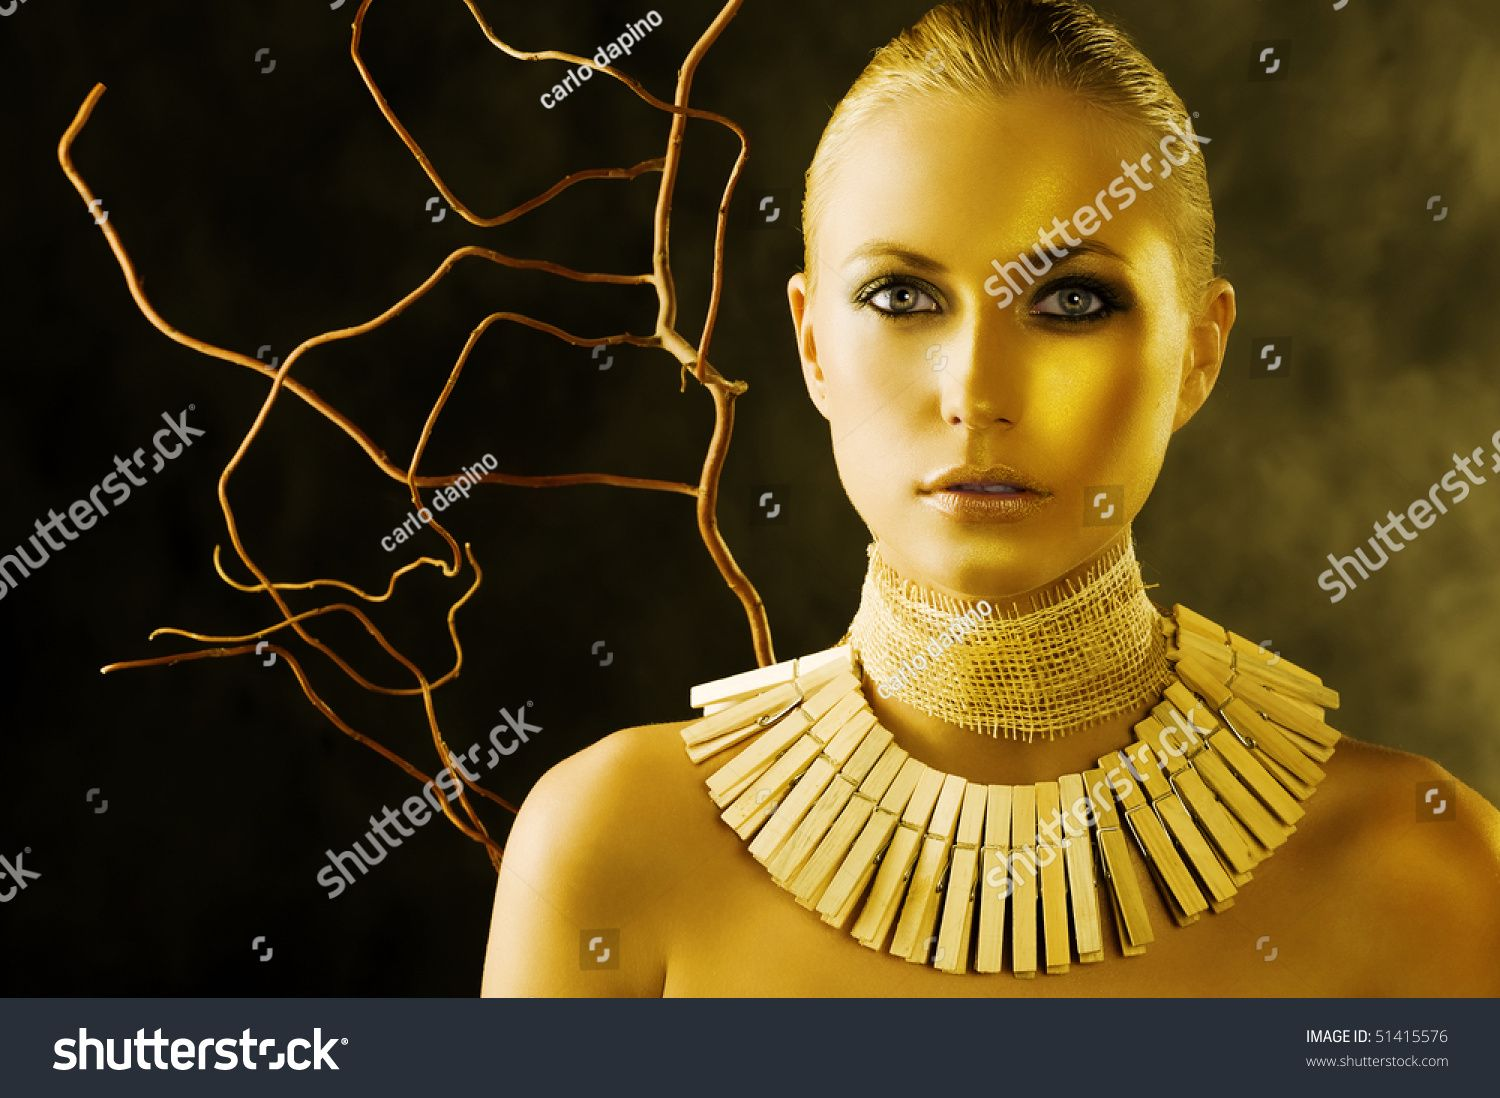 beautiful portrait of attractive blond woman like an amazon with a necklace made of wood peg #Sponsored , #AD, #attractive#blond#beautiful#portrait